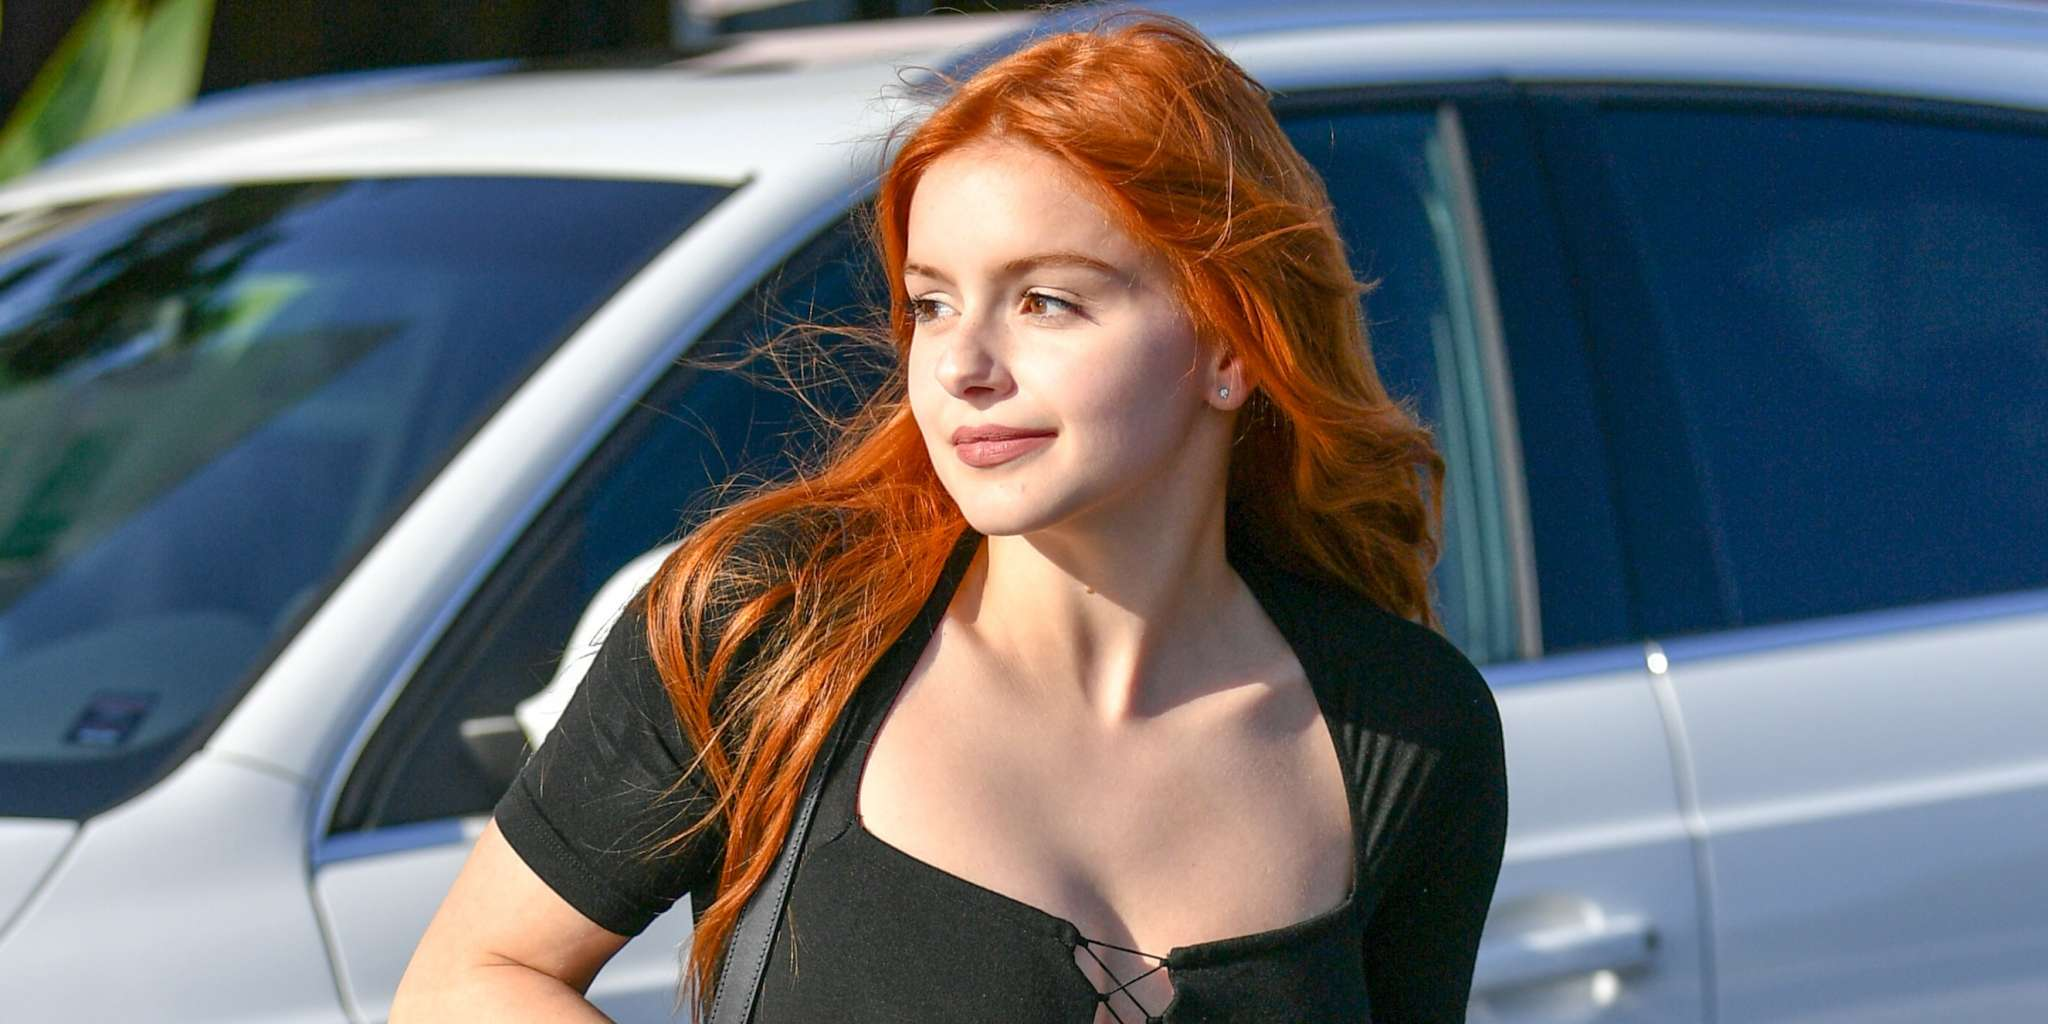 ariel-winter-claps-back-at-hater-accusing-her-of-getting-many-plastic-surgeries